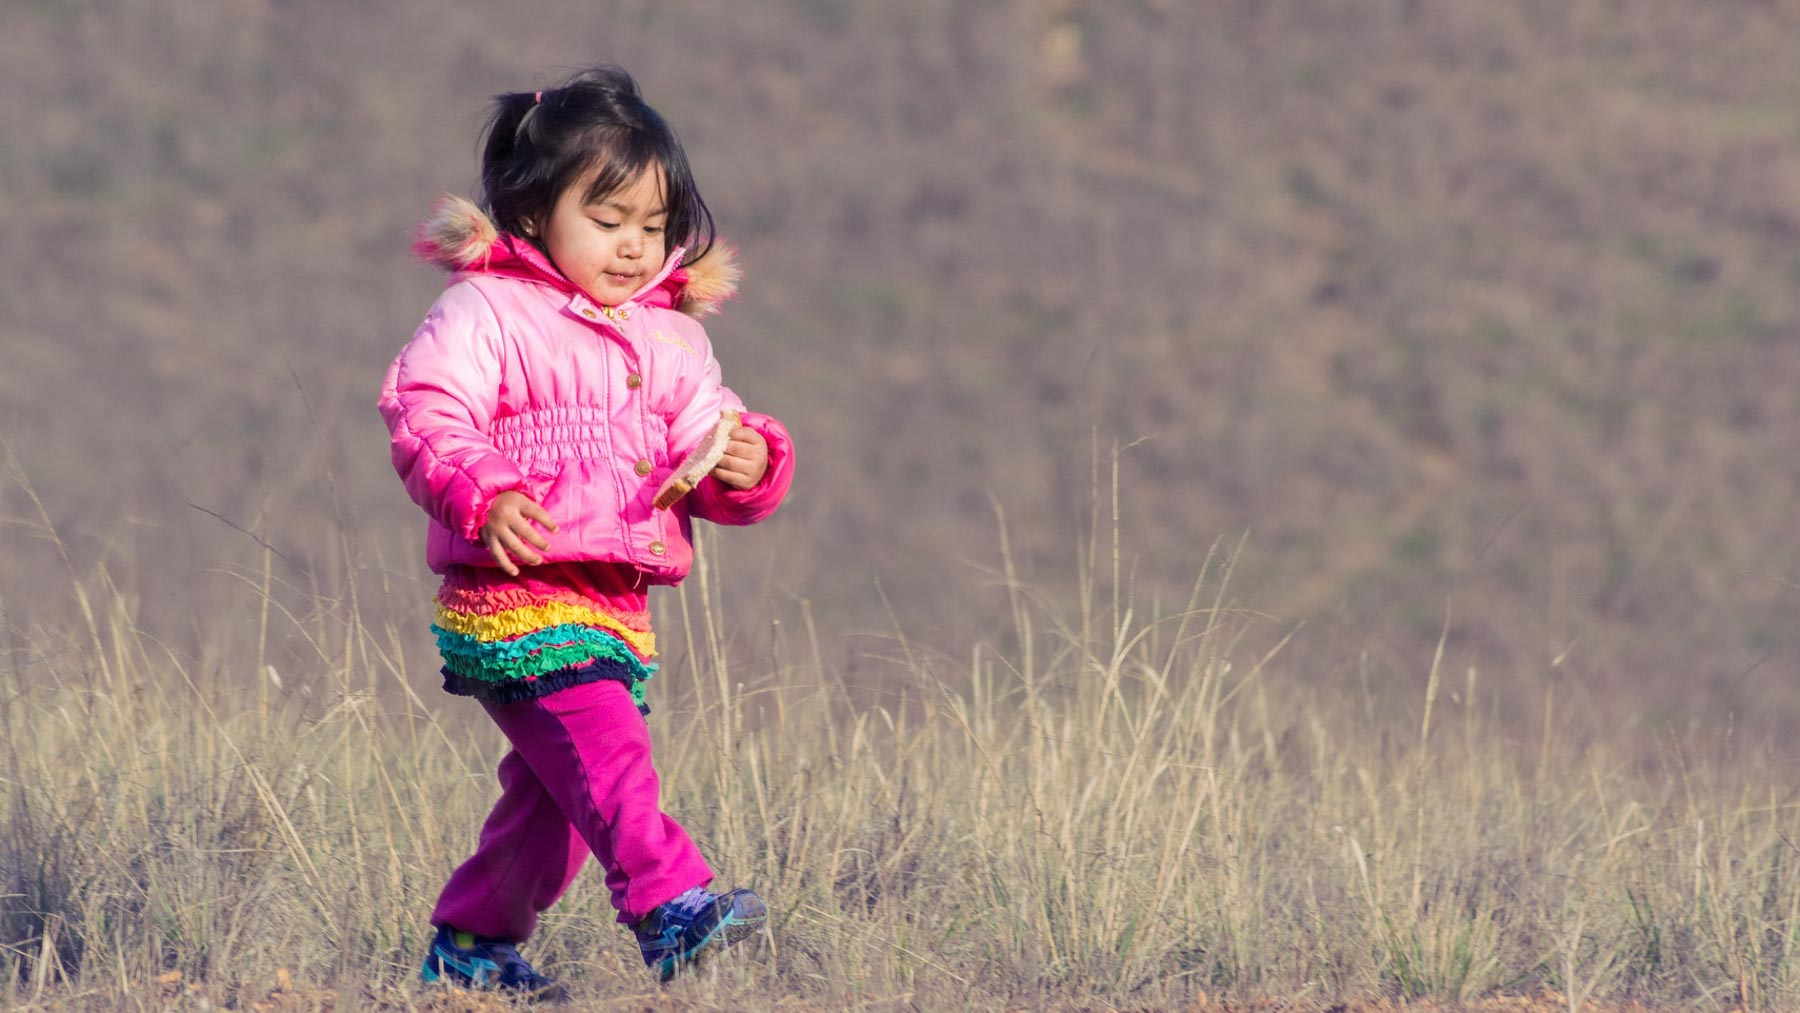 little girl walking to represent taking one step at a time